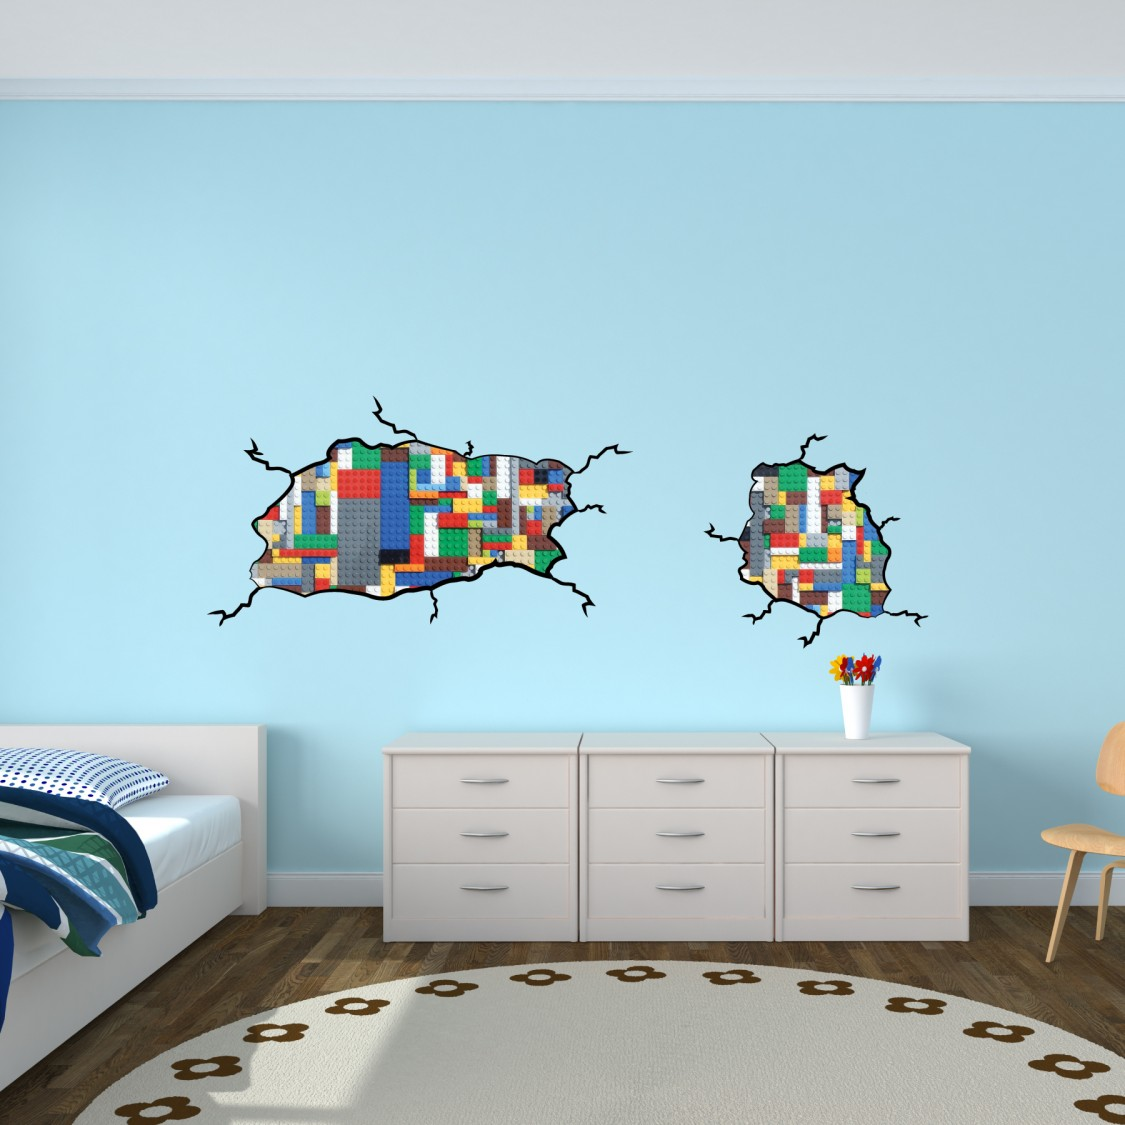 kids wall stickers for bedrooms inspired by lego wall lego wall stickers firebox shop for the unusual